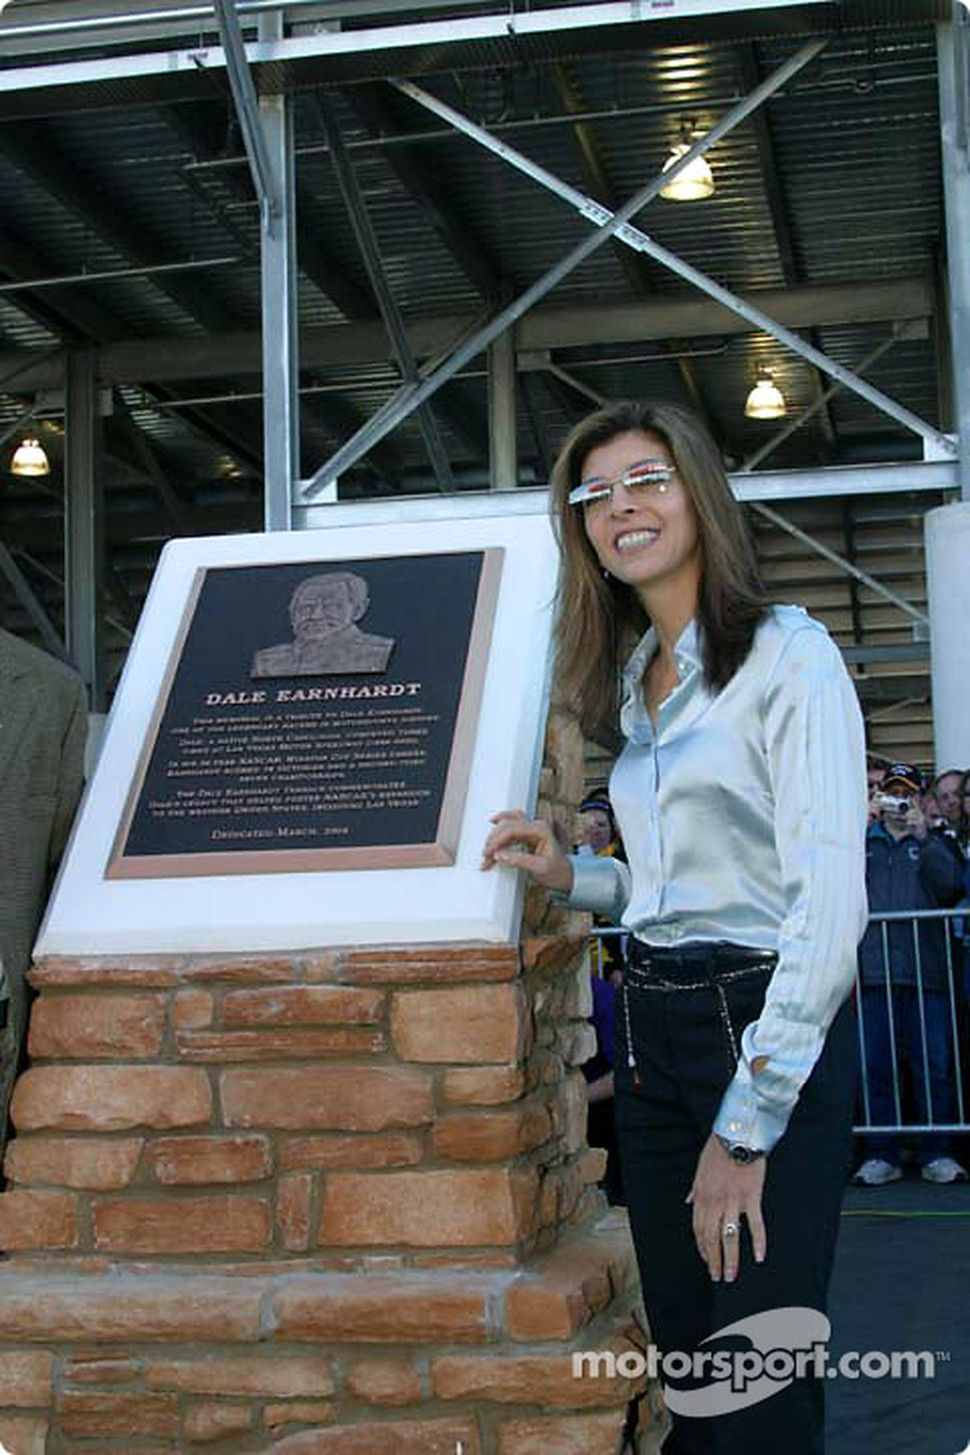 Teresa Earnhardt Remarried Presentation Of The Dale Earnhardt Memorial Teresa Earnhardt Teresa Earnhardt Dale Earnhardt Nascar Racing In late 2006, earnhardt hired amusement executive max siegel as president of international businesses to assist. teresa earnhardt dale earnhardt